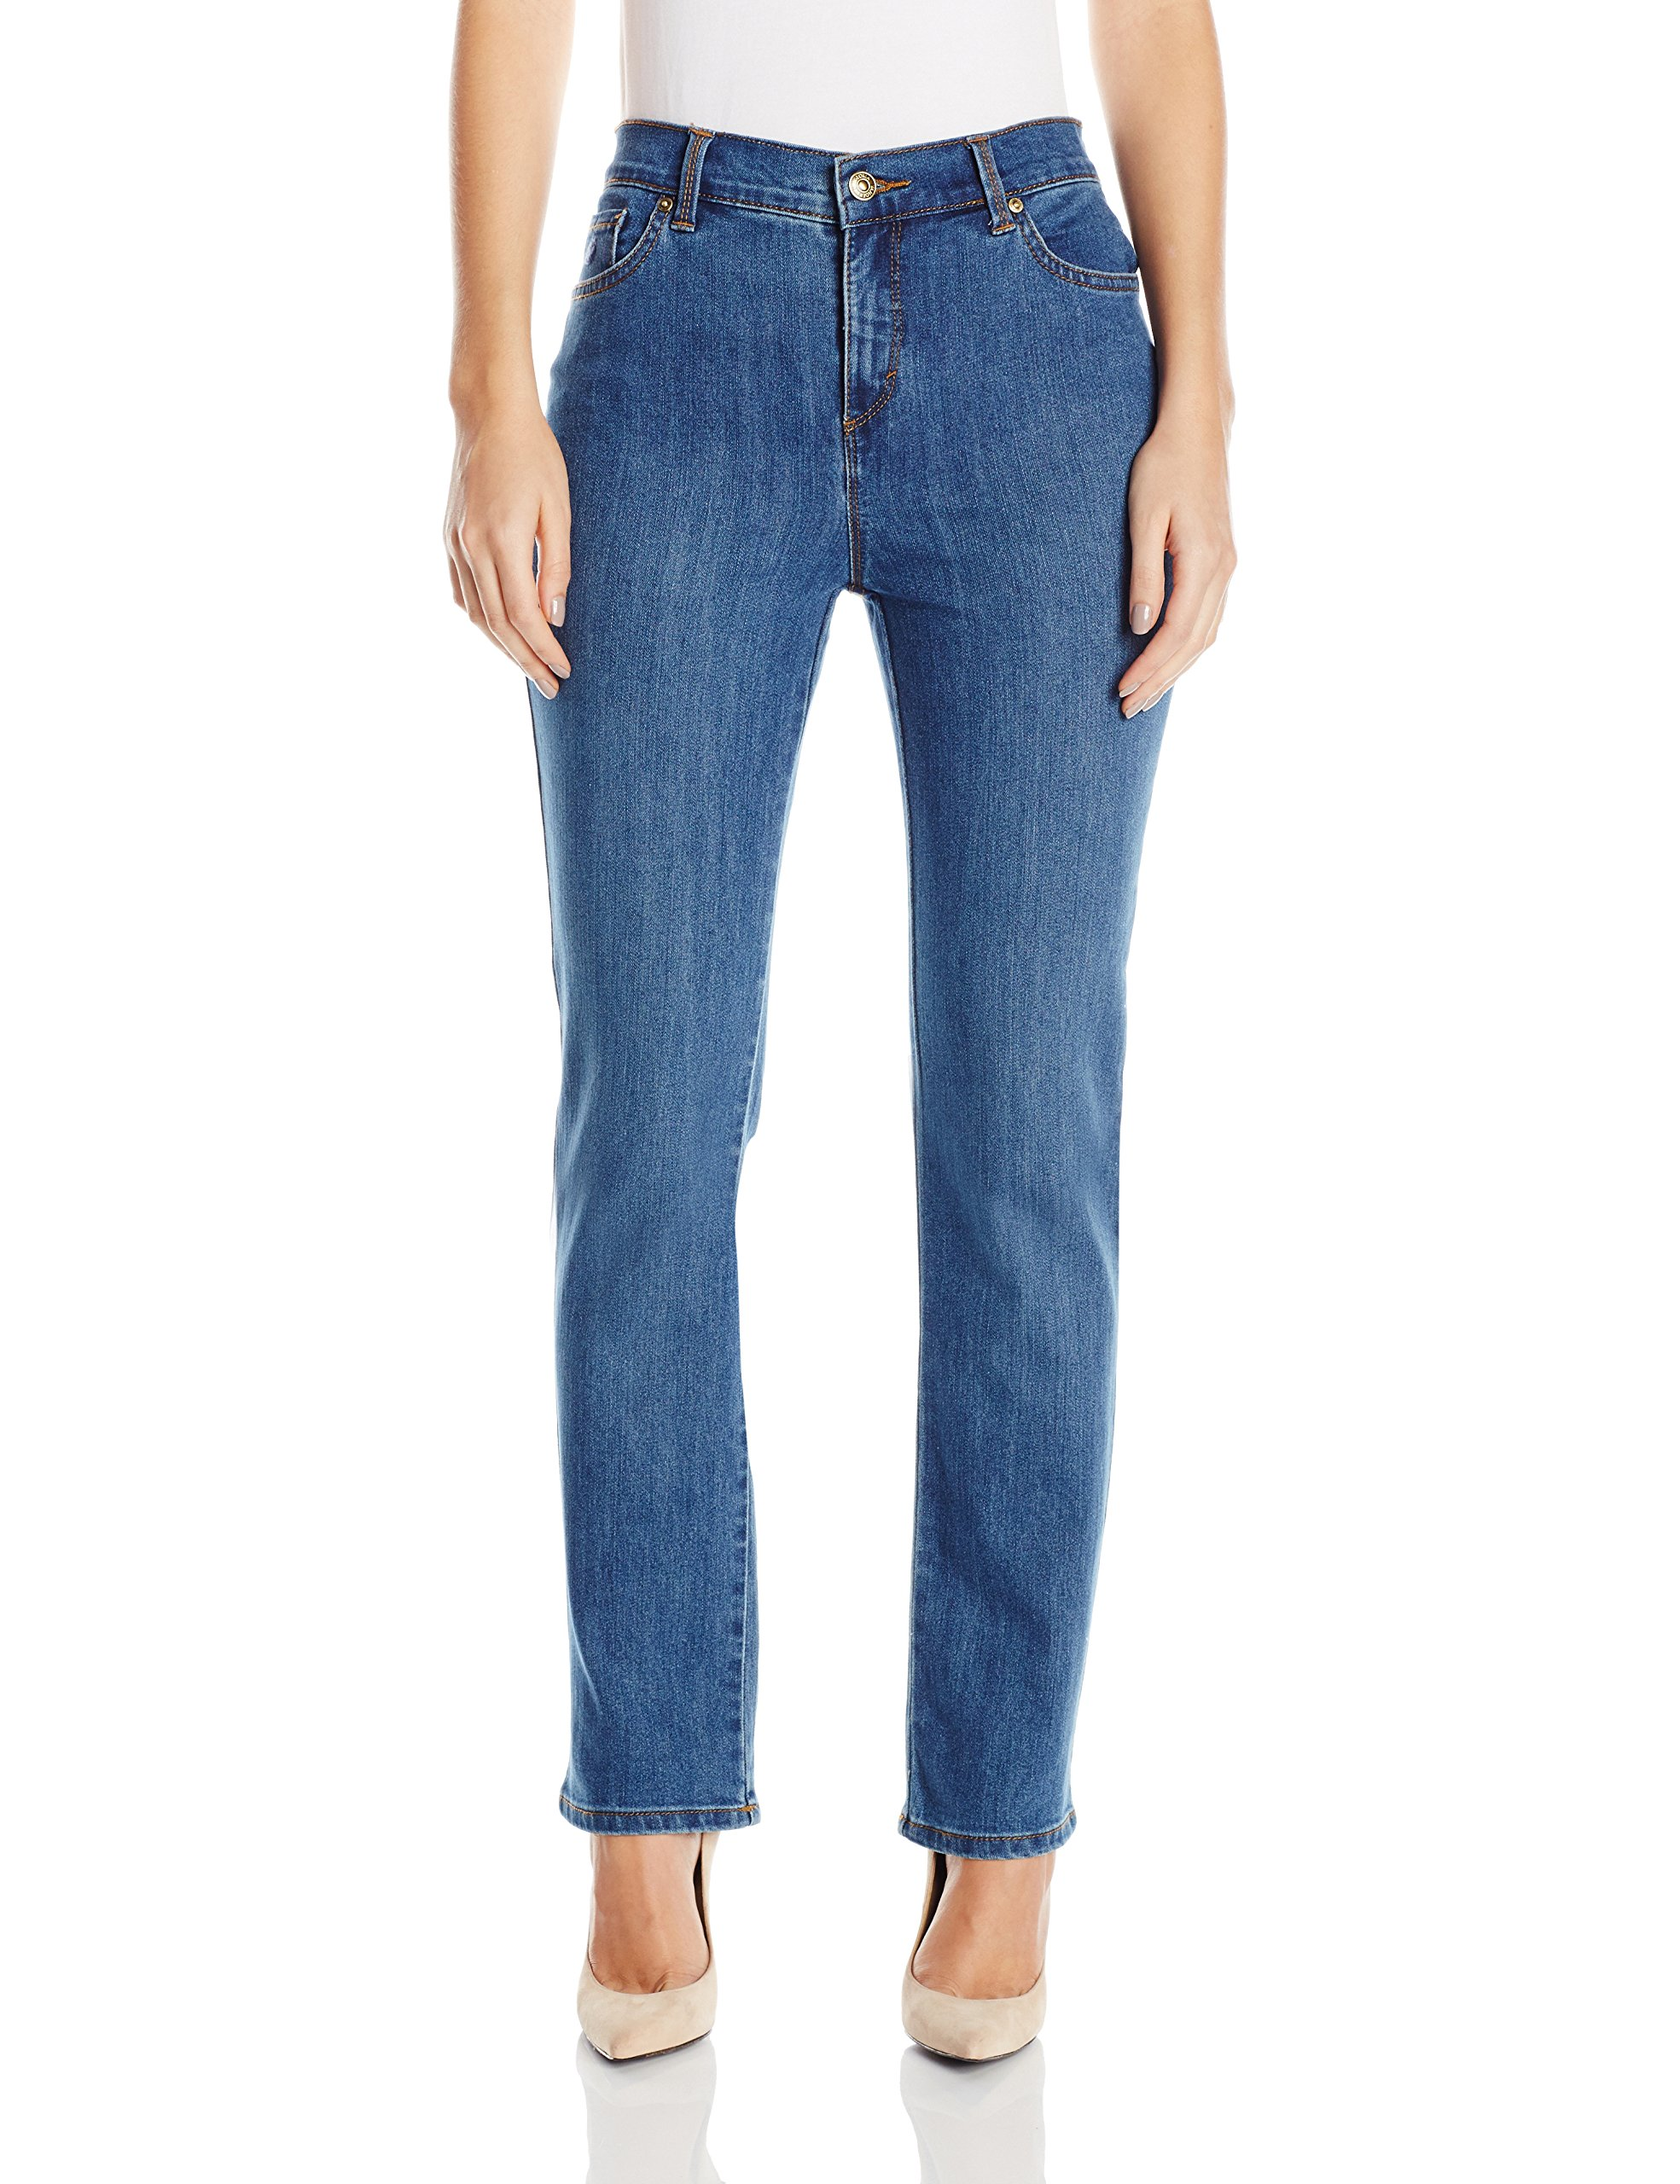 Gloria Vanderbilt Women's Petite Amanda-Classic Straight Leg Jean in Short Length, Sundance Wash, 12P